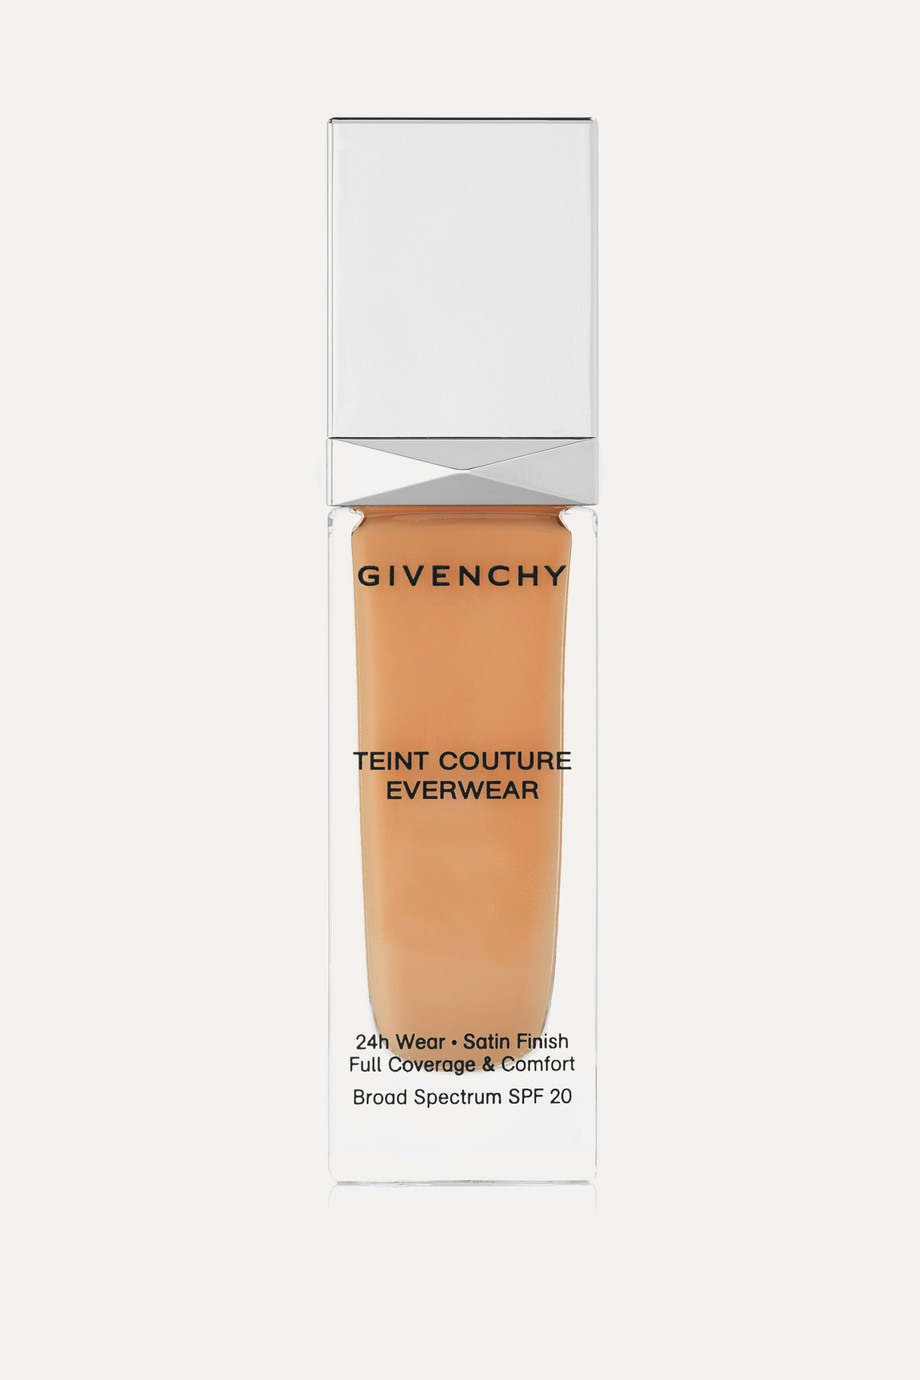 Givenchy Beauty Teint Couture Everwear Foundation SPF20 - P210, 30ml